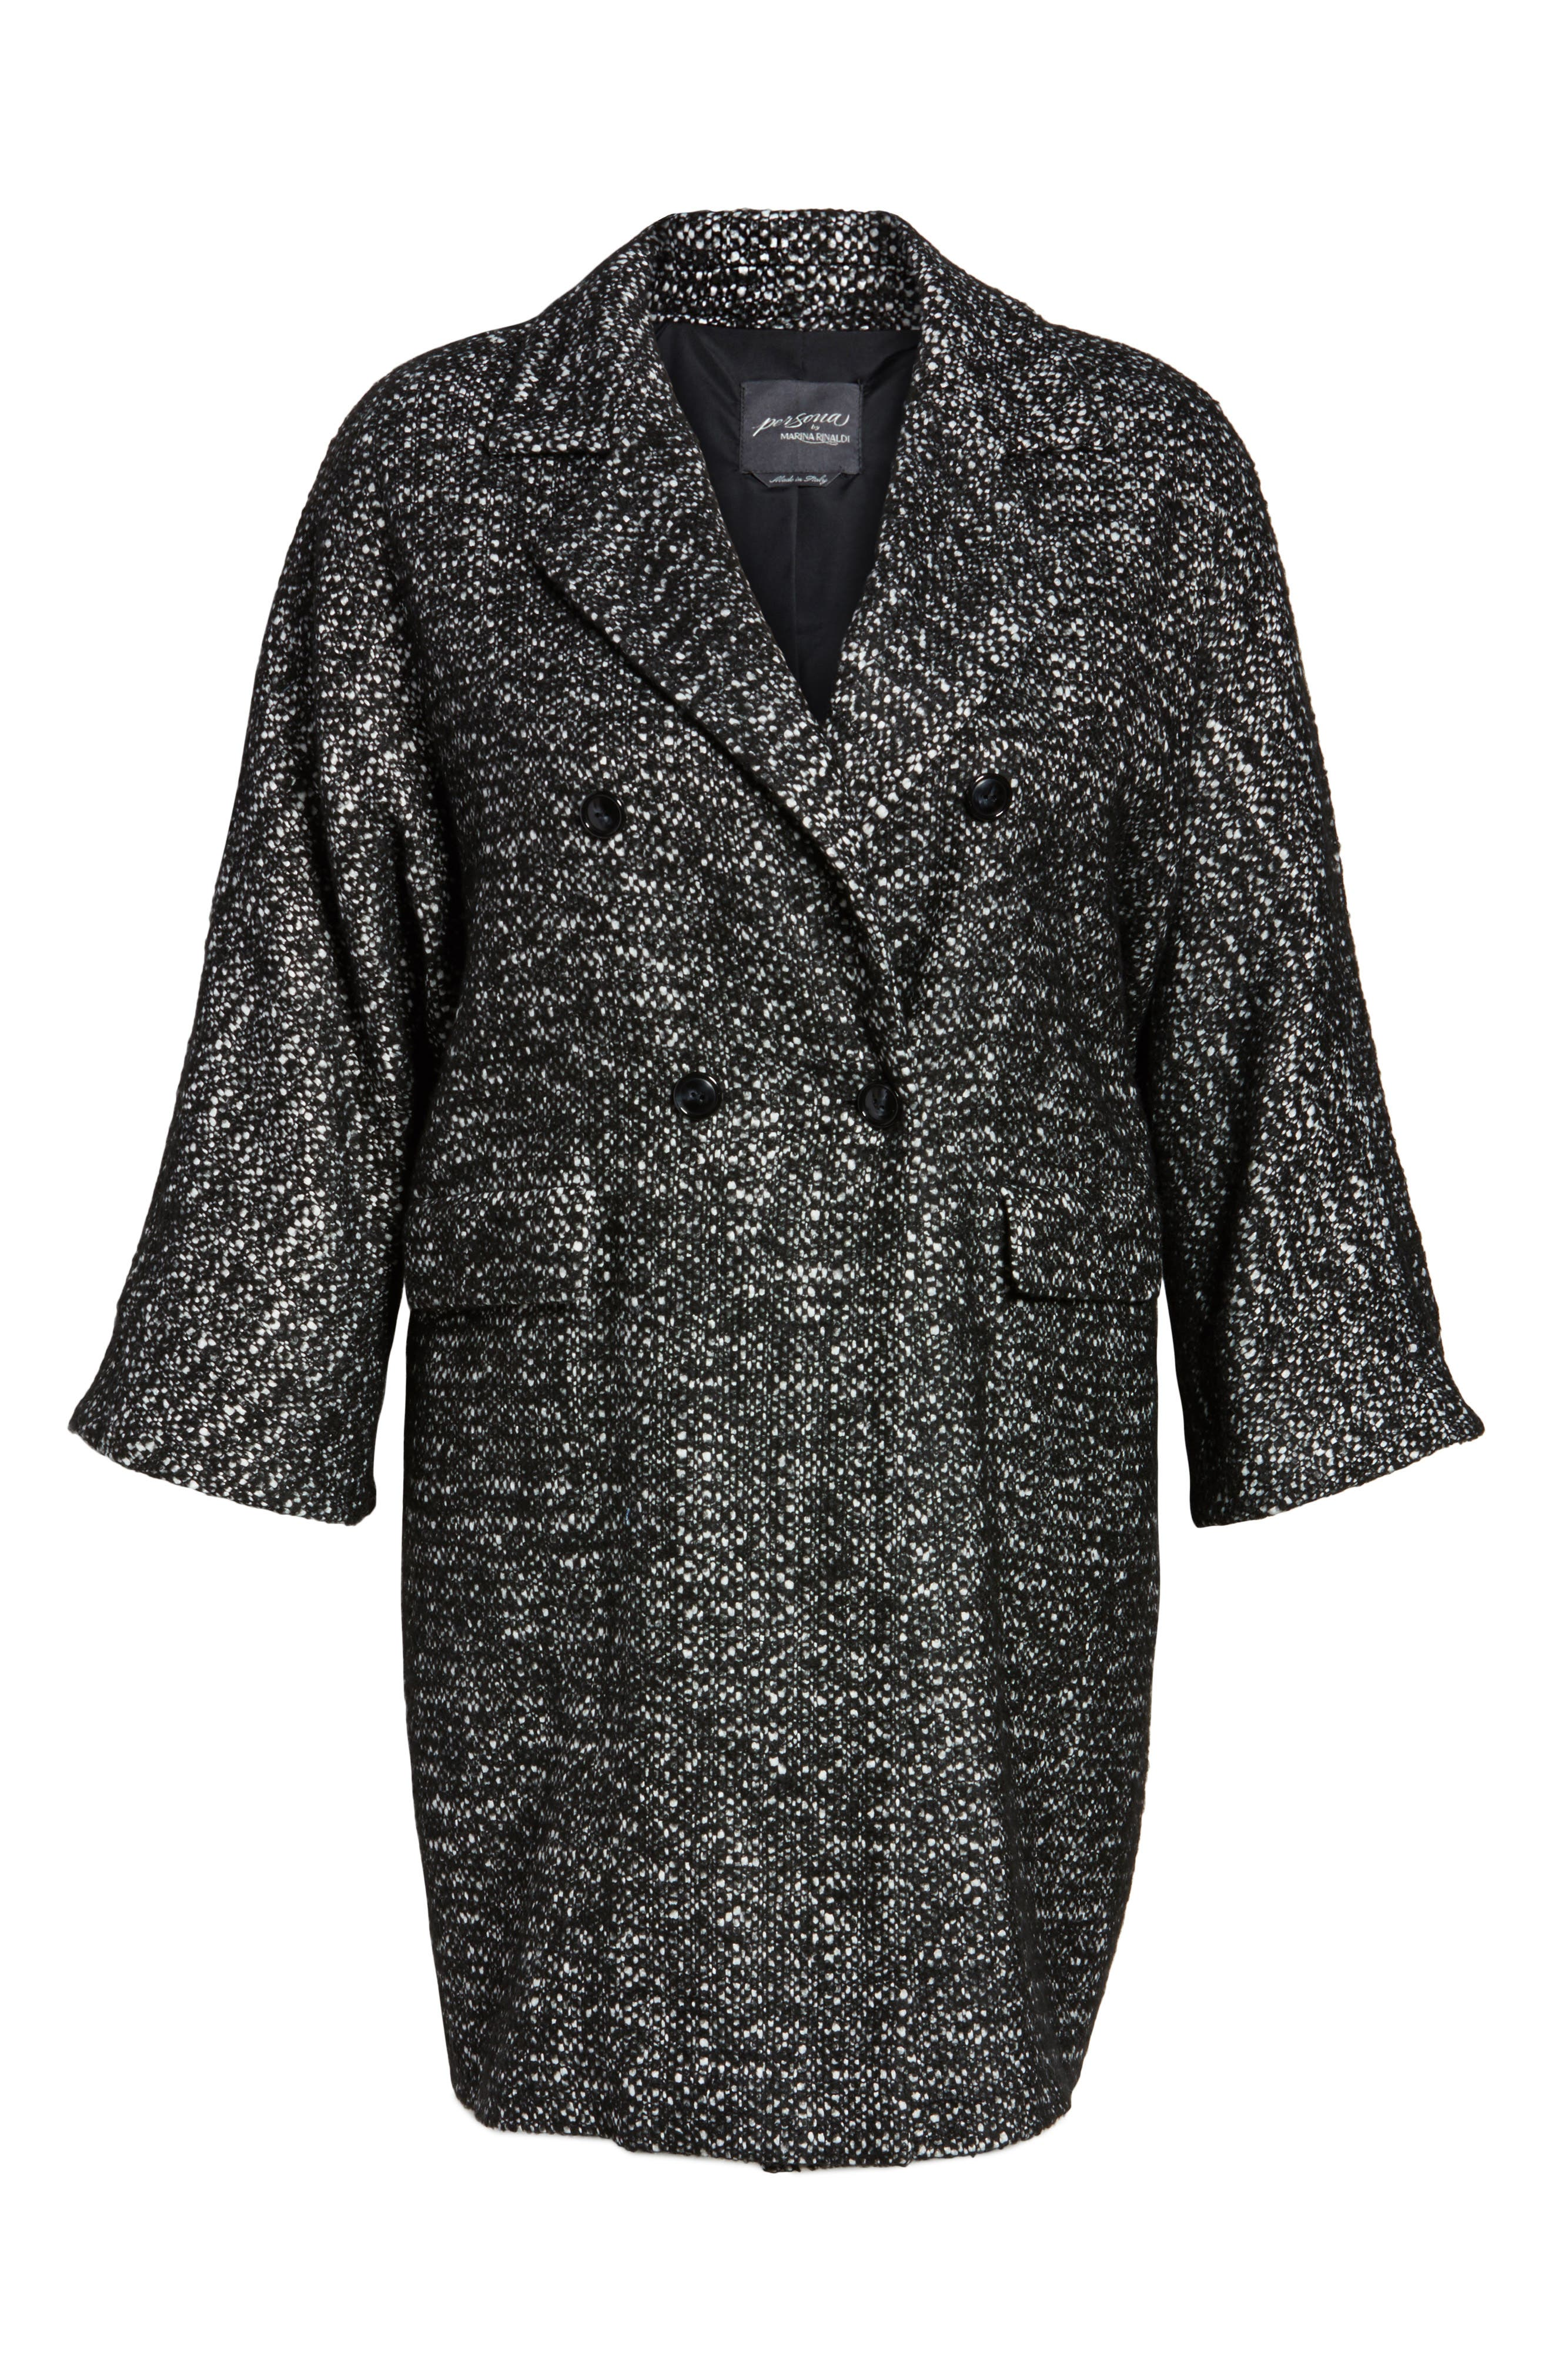 Tweed Car Coat,                             Alternate thumbnail 6, color,                             Black